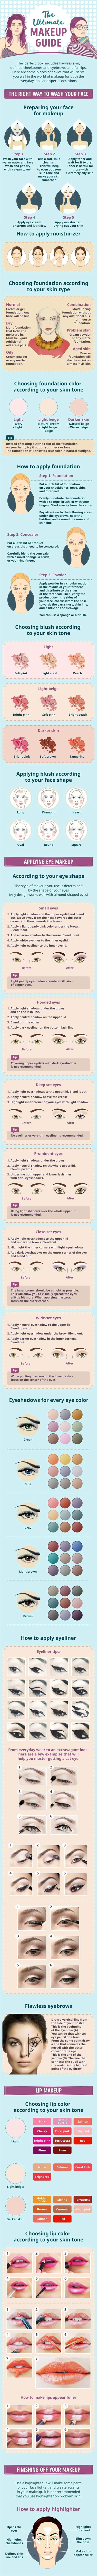 Best Makeup Tutorials for Teens -The Ultimate Makeup Guide You Can't Live With...